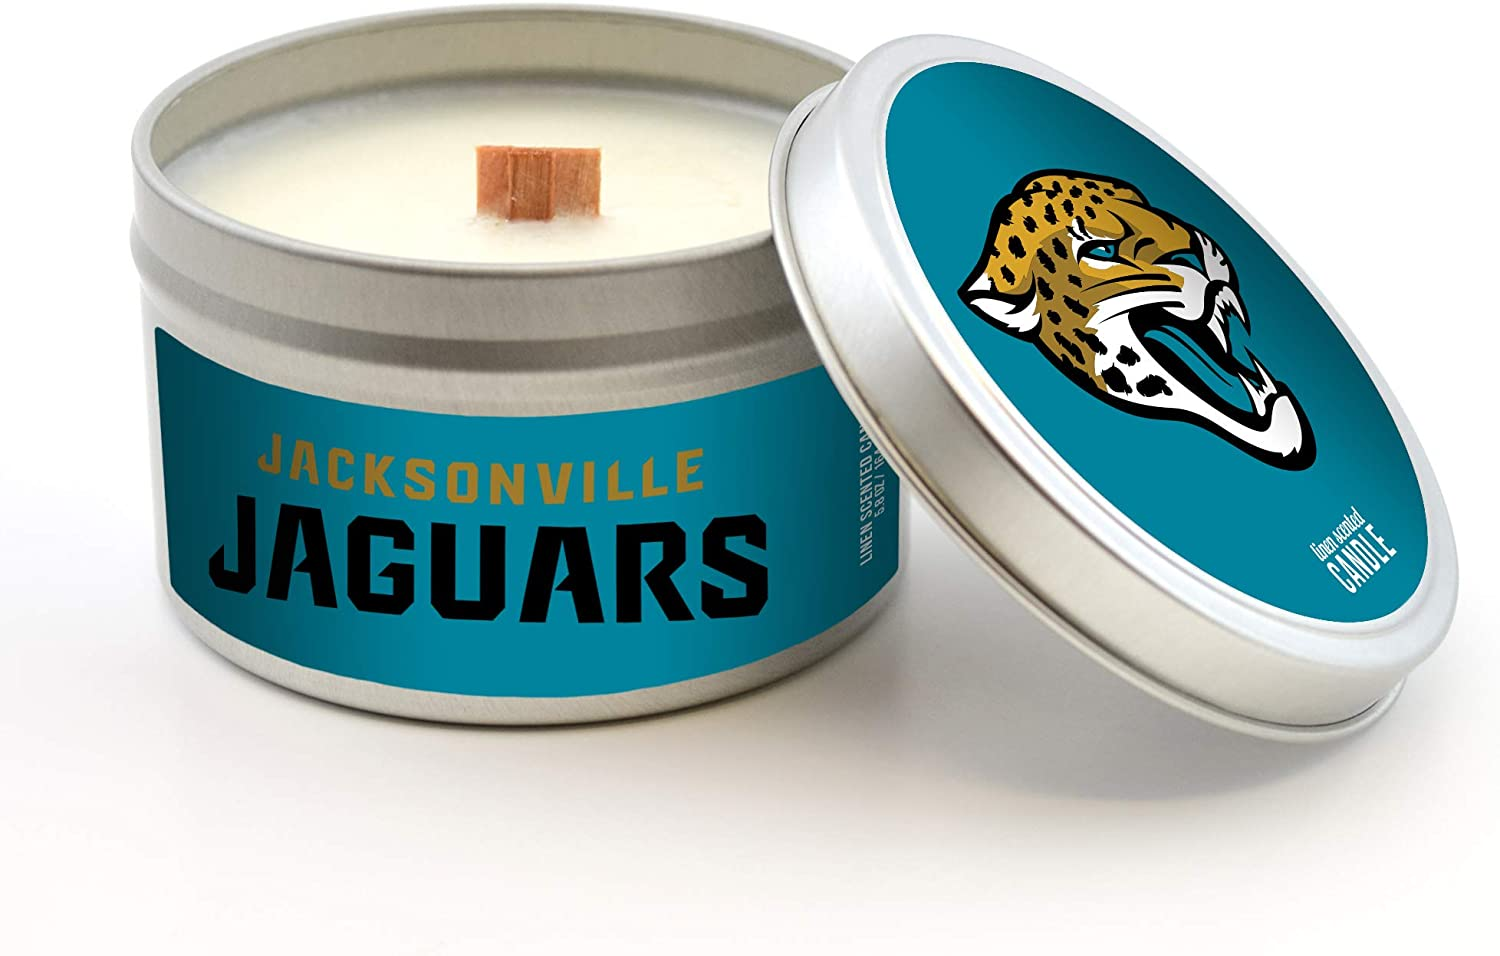 5.8-Ounce Worthy Promotional NFL Jacksonville Jaguars Linen Scented Wood Wick Candle in Travel Tin with Lid